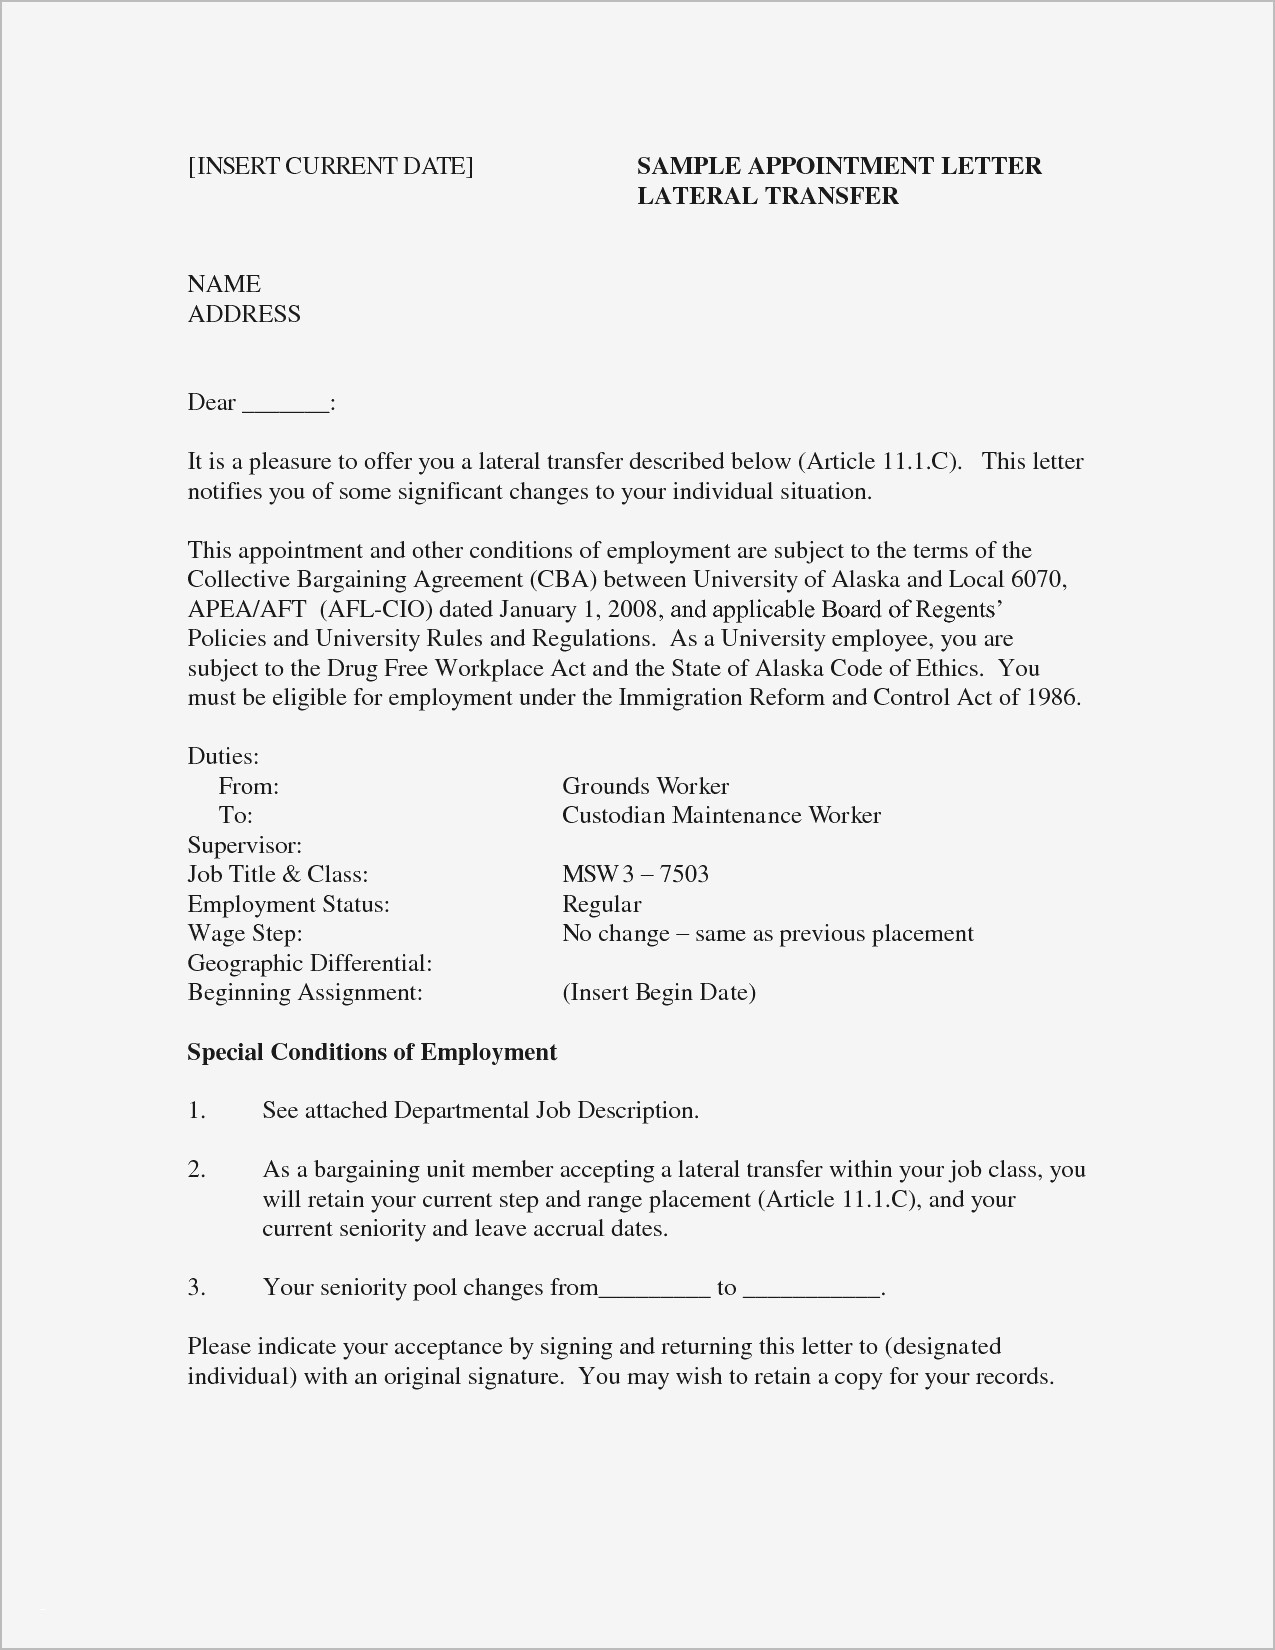 Resume Introduction Examples - Maintenance Resume Objective Statement New Job Resume Examples Best